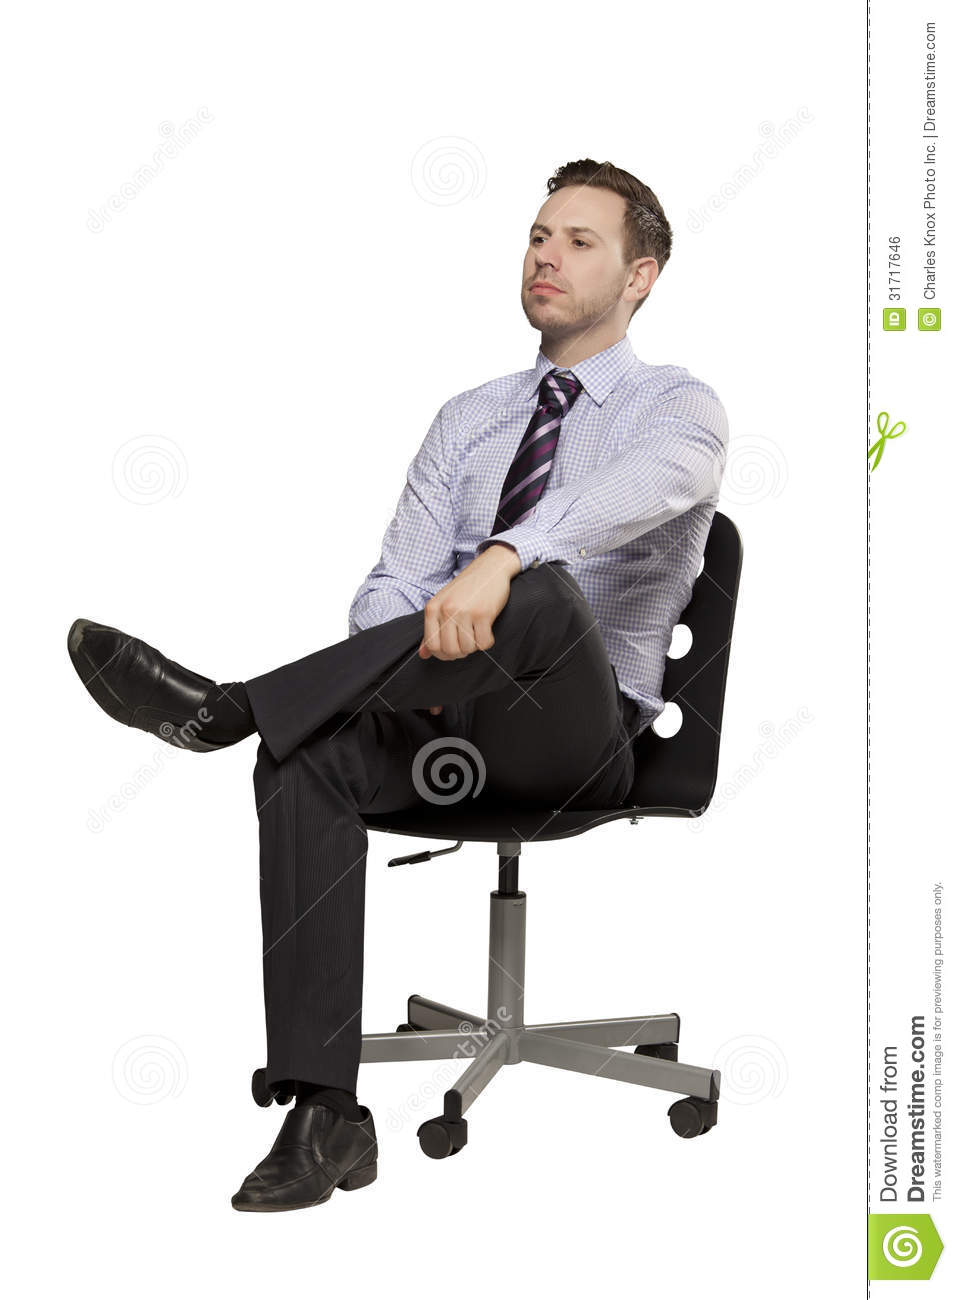 Inviting Business Man Sitting On Chair Royalty Free Stock